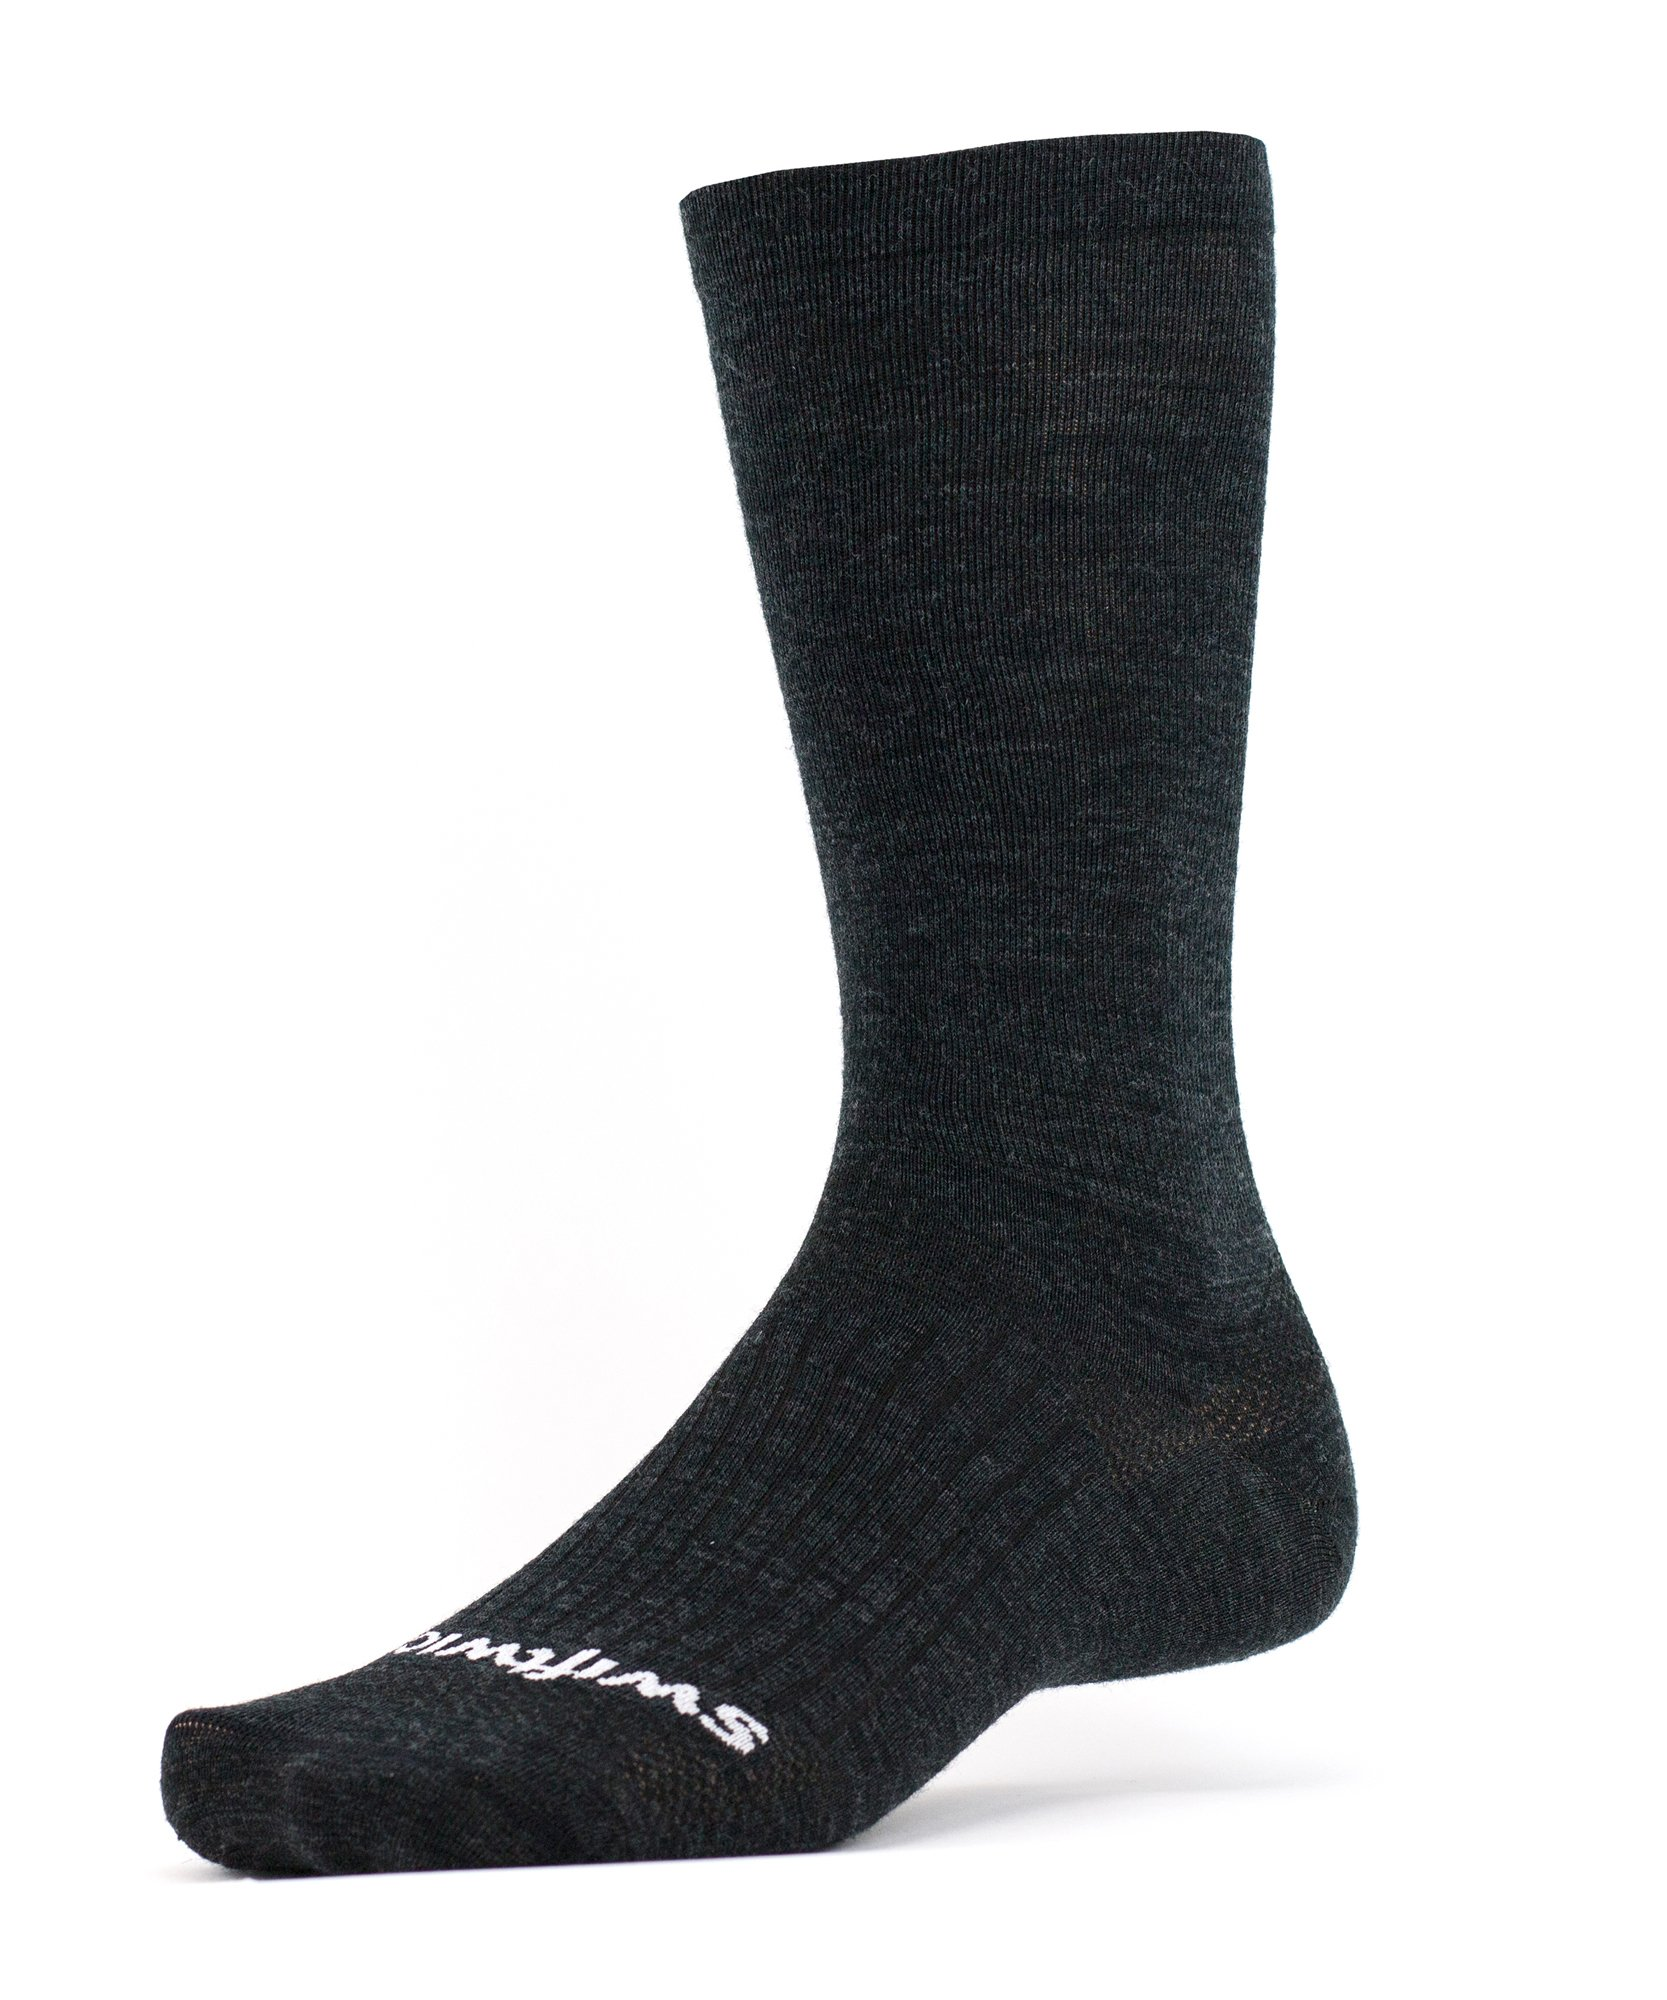 Swiftwick - PURSUIT BUSINESS EIGHT, Tall Crew Socks for Everyday Life, Coal, Large